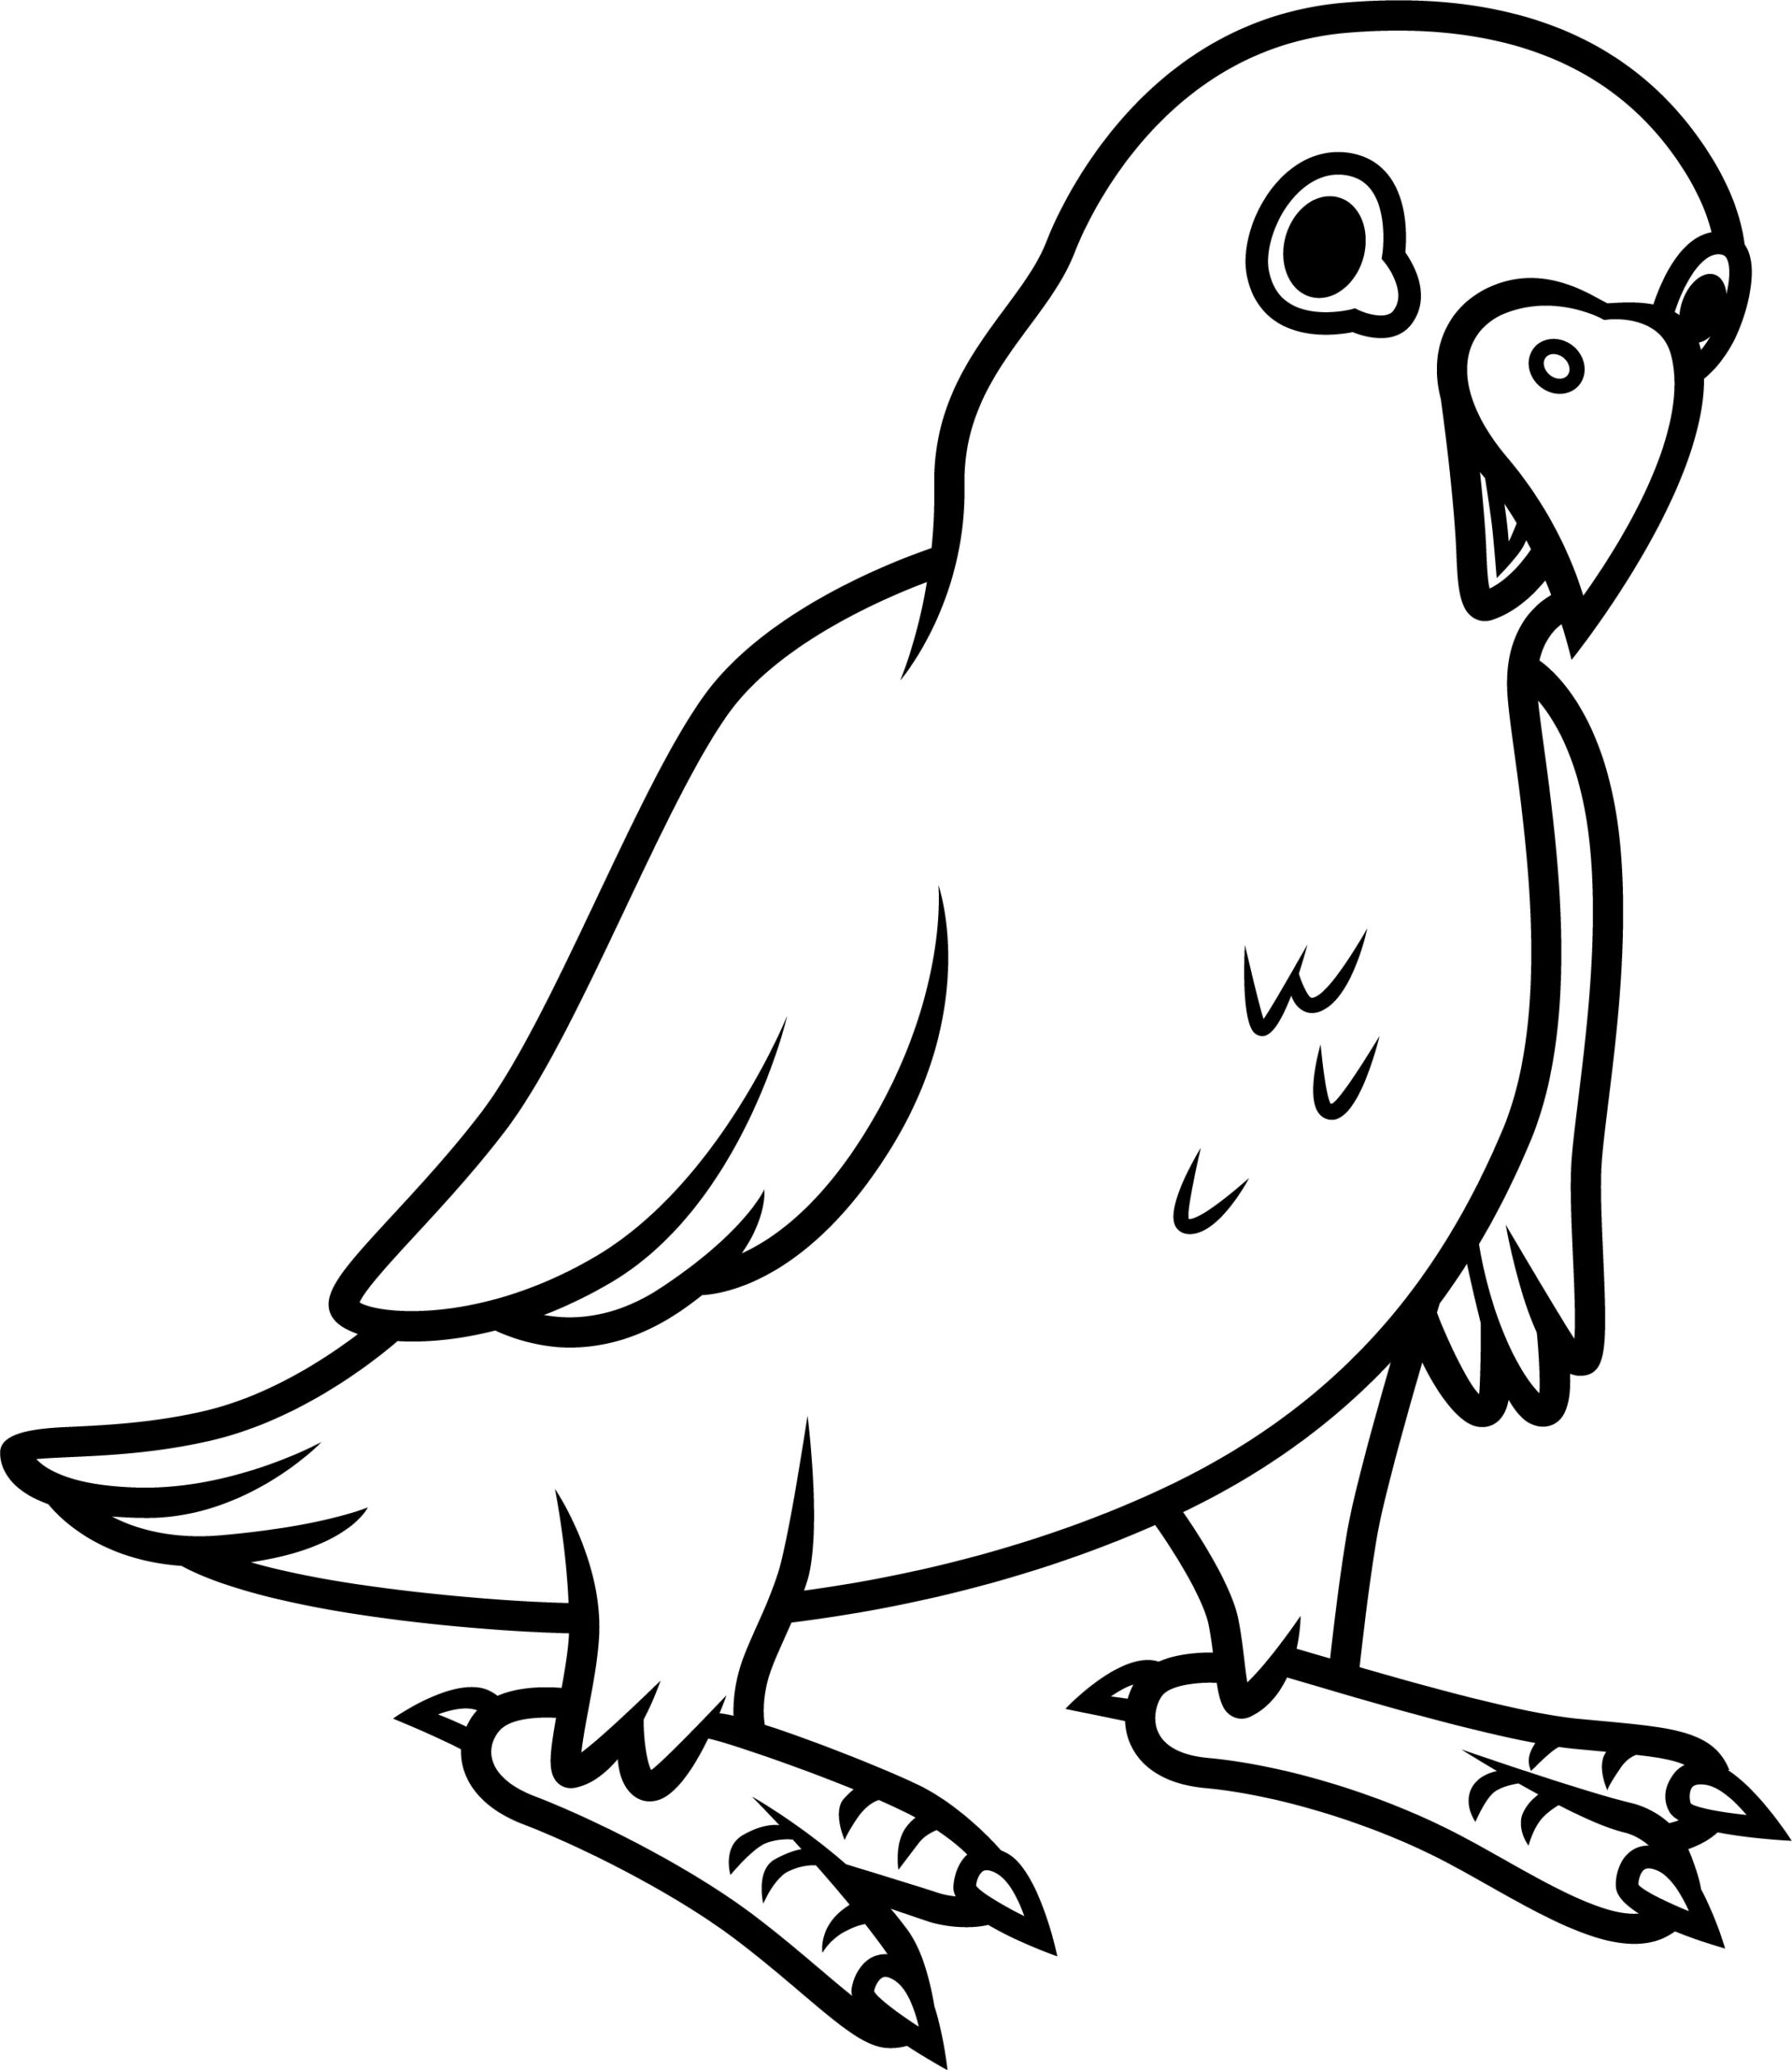 Parrot colouring page